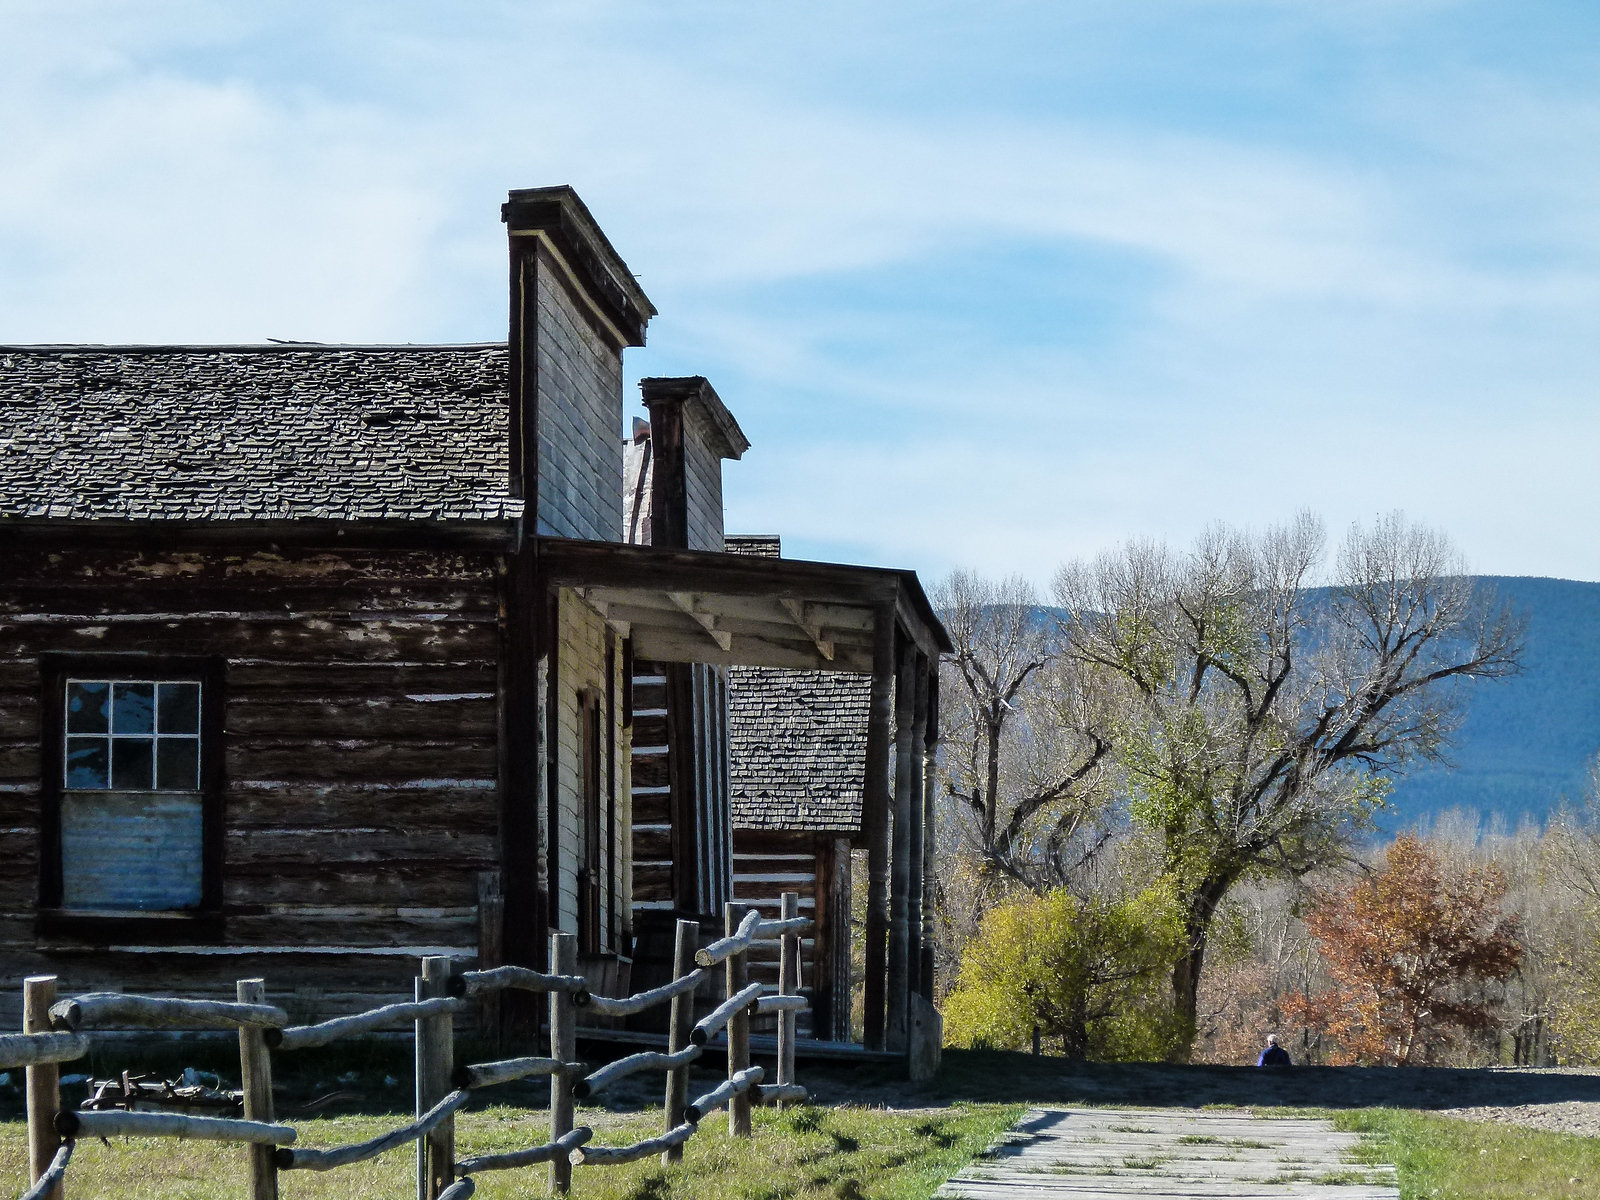 Log buildings line the sidewalk at Bannack Ghost Town in Montana